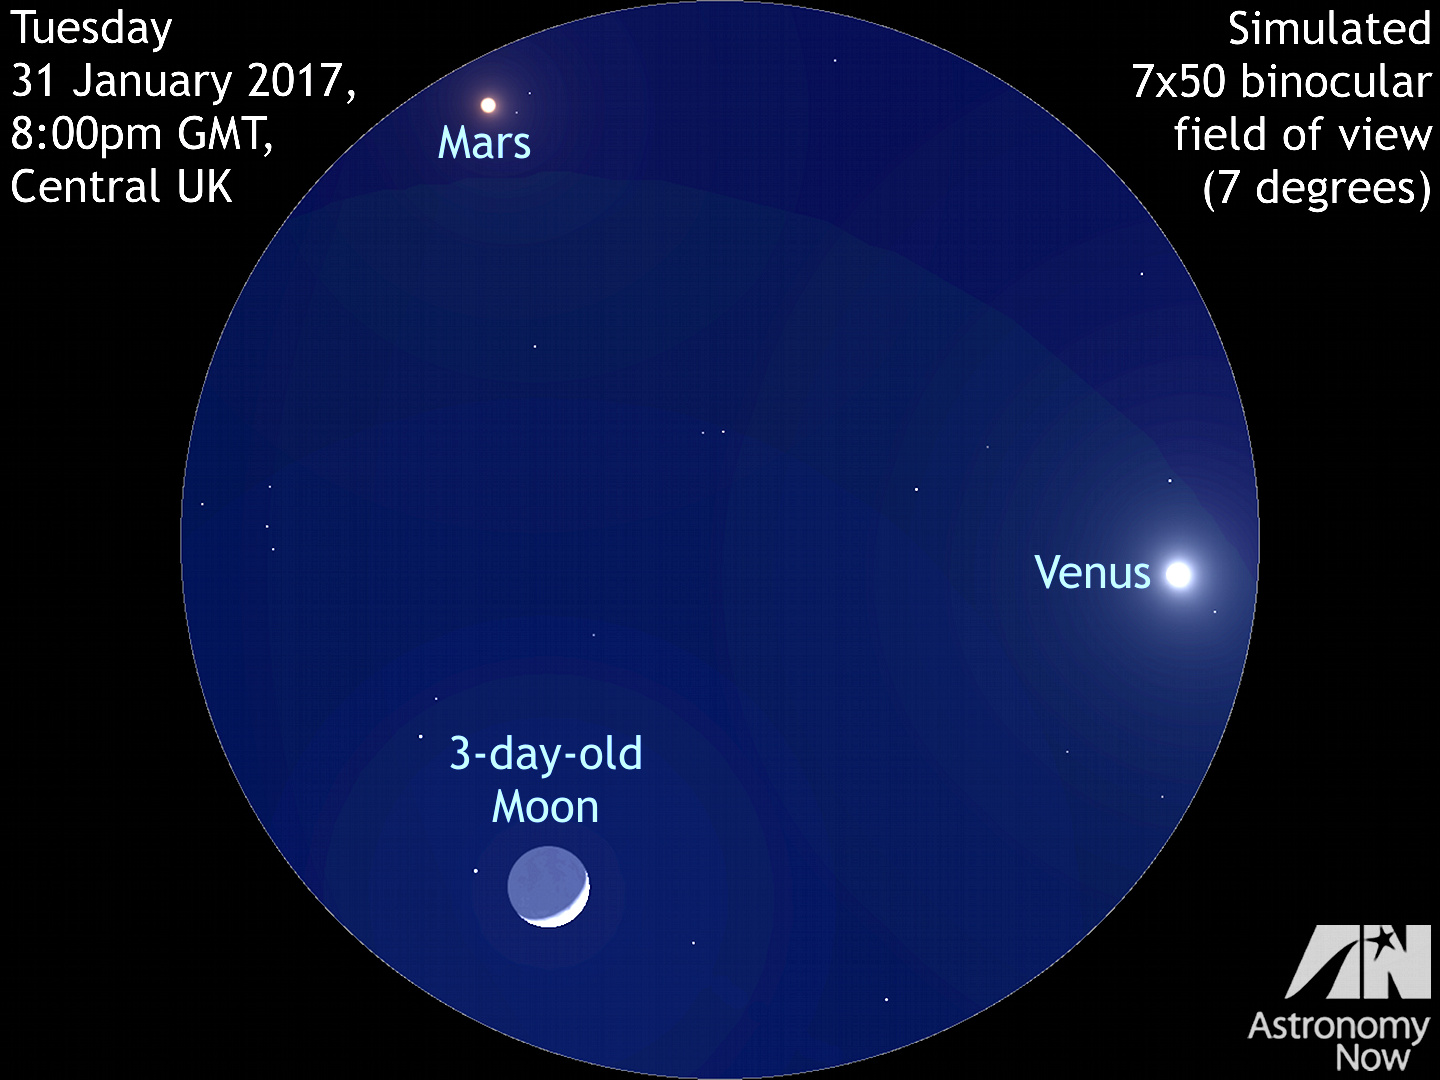 Moon swept by Venus in the night sky